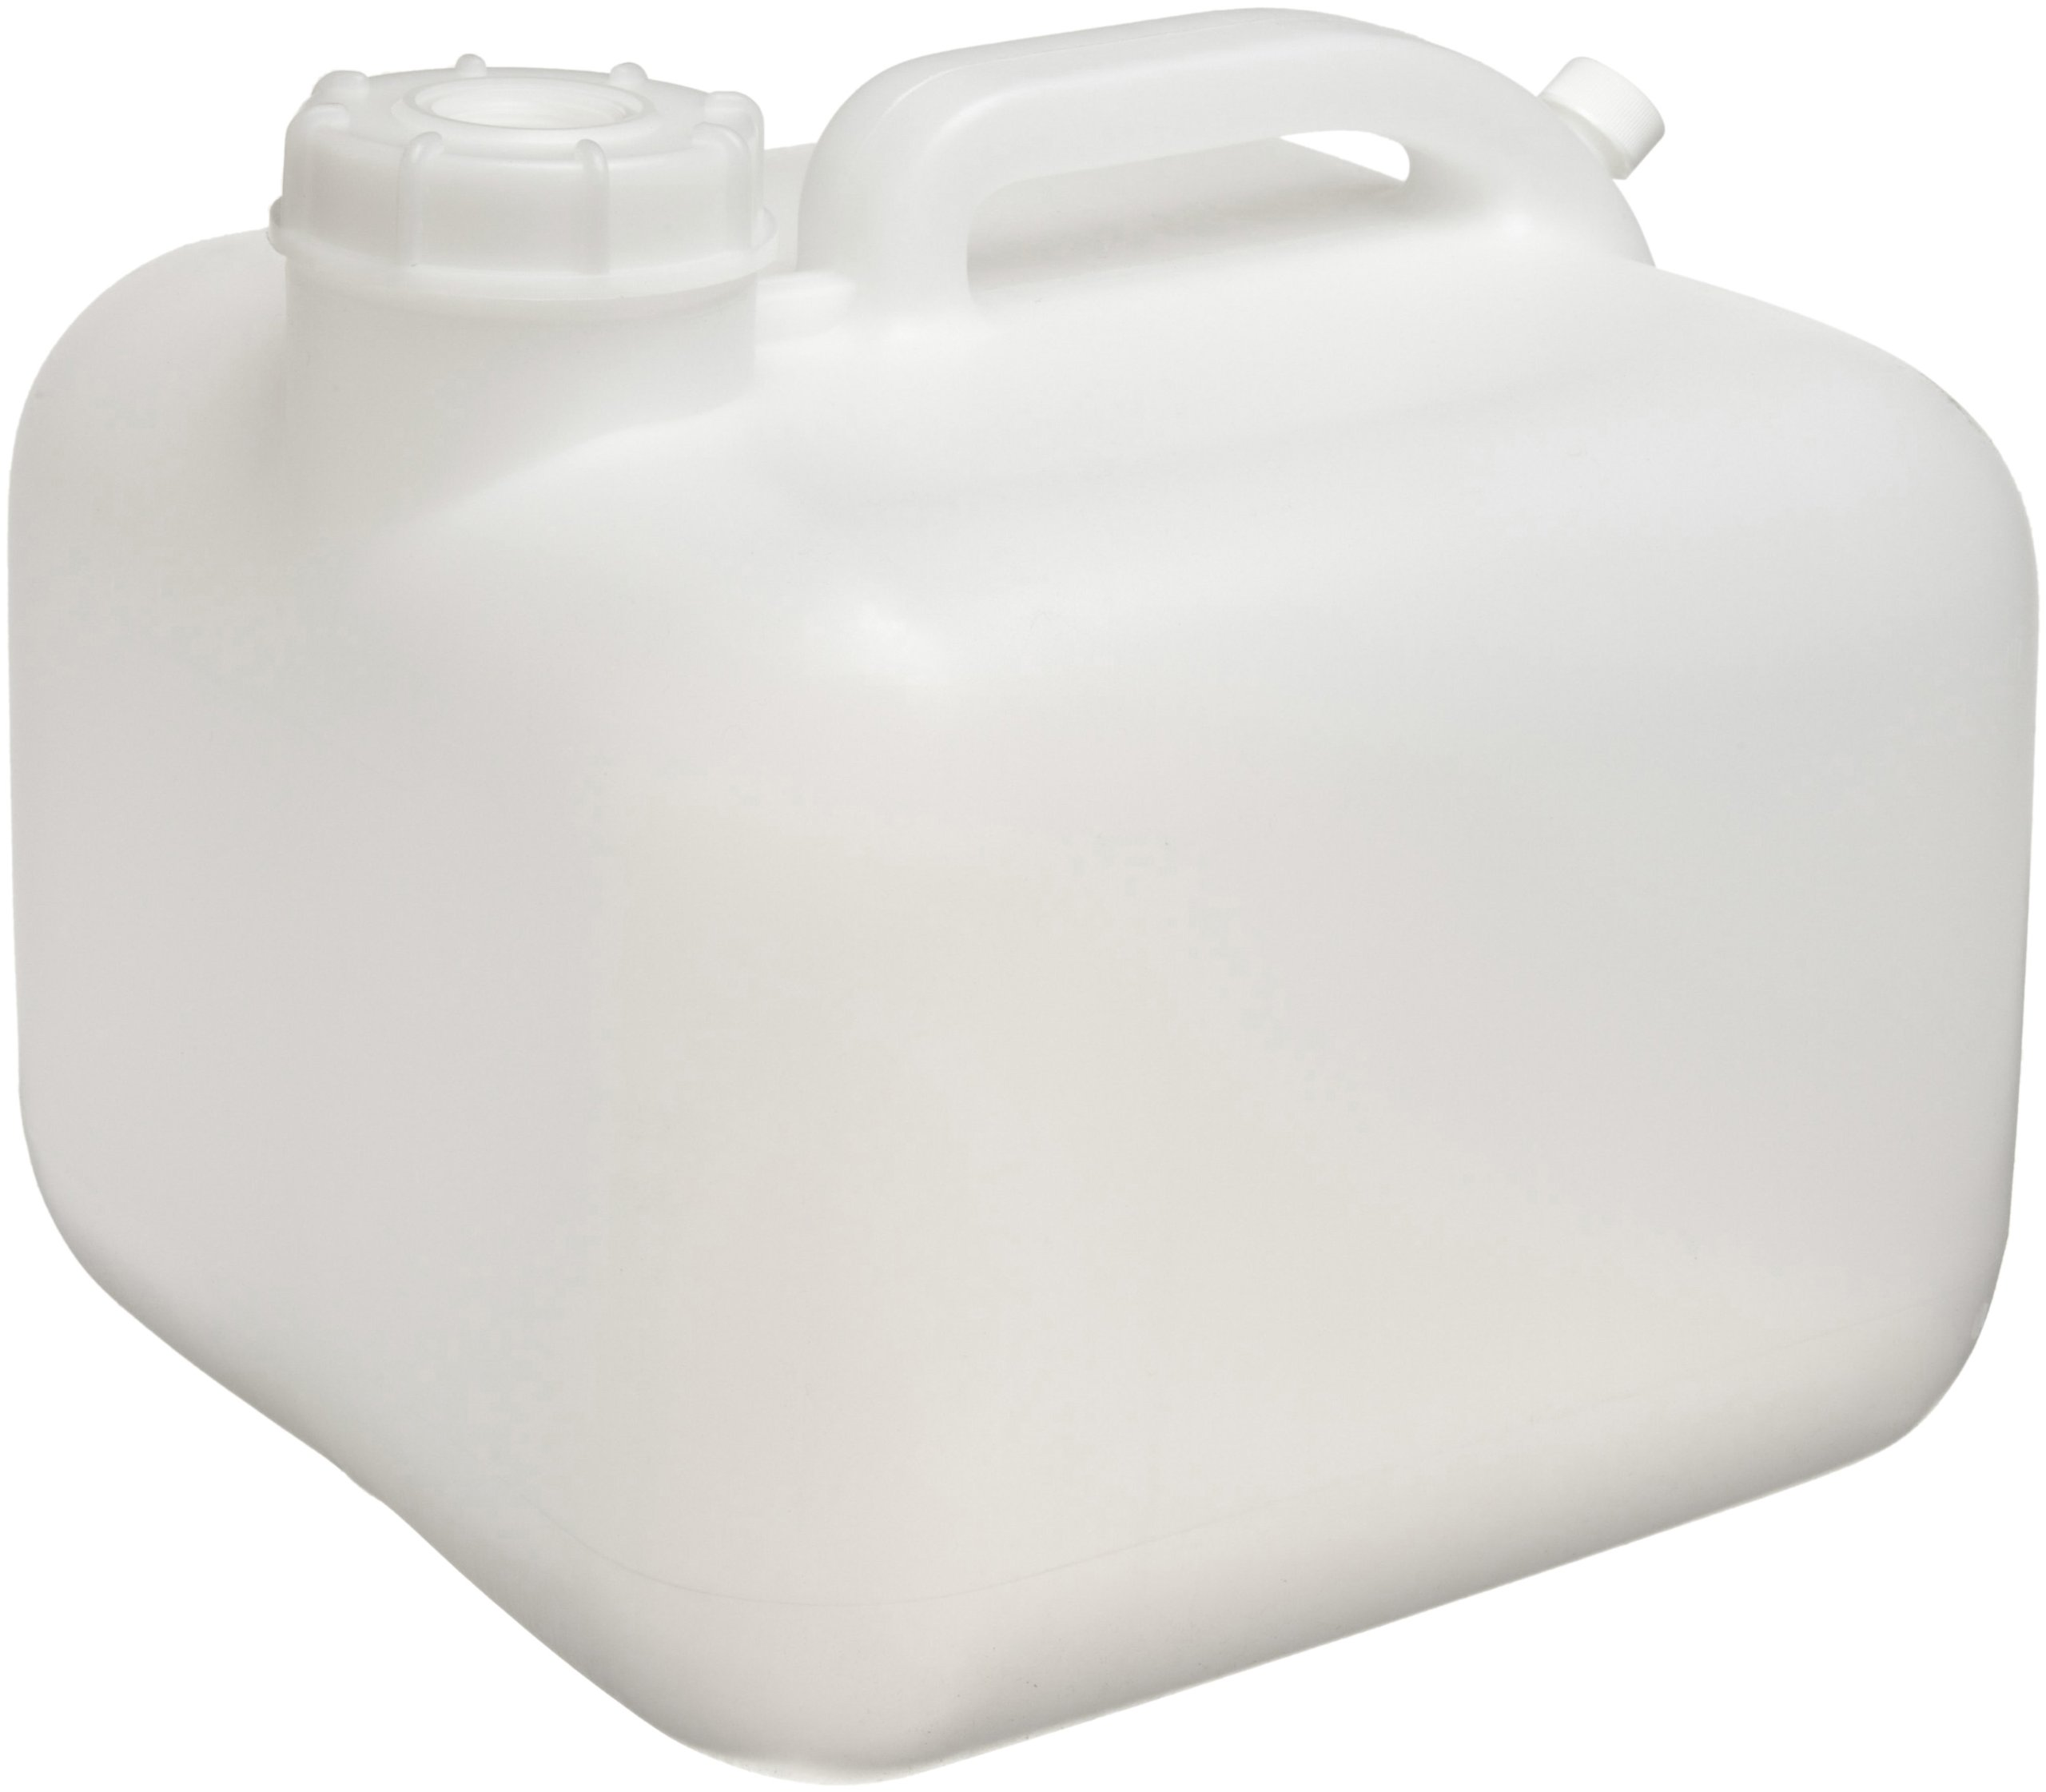 Dynalon 405614 HDPE 2-1/2 gallon Light Weight Carboy (Case Of 4)